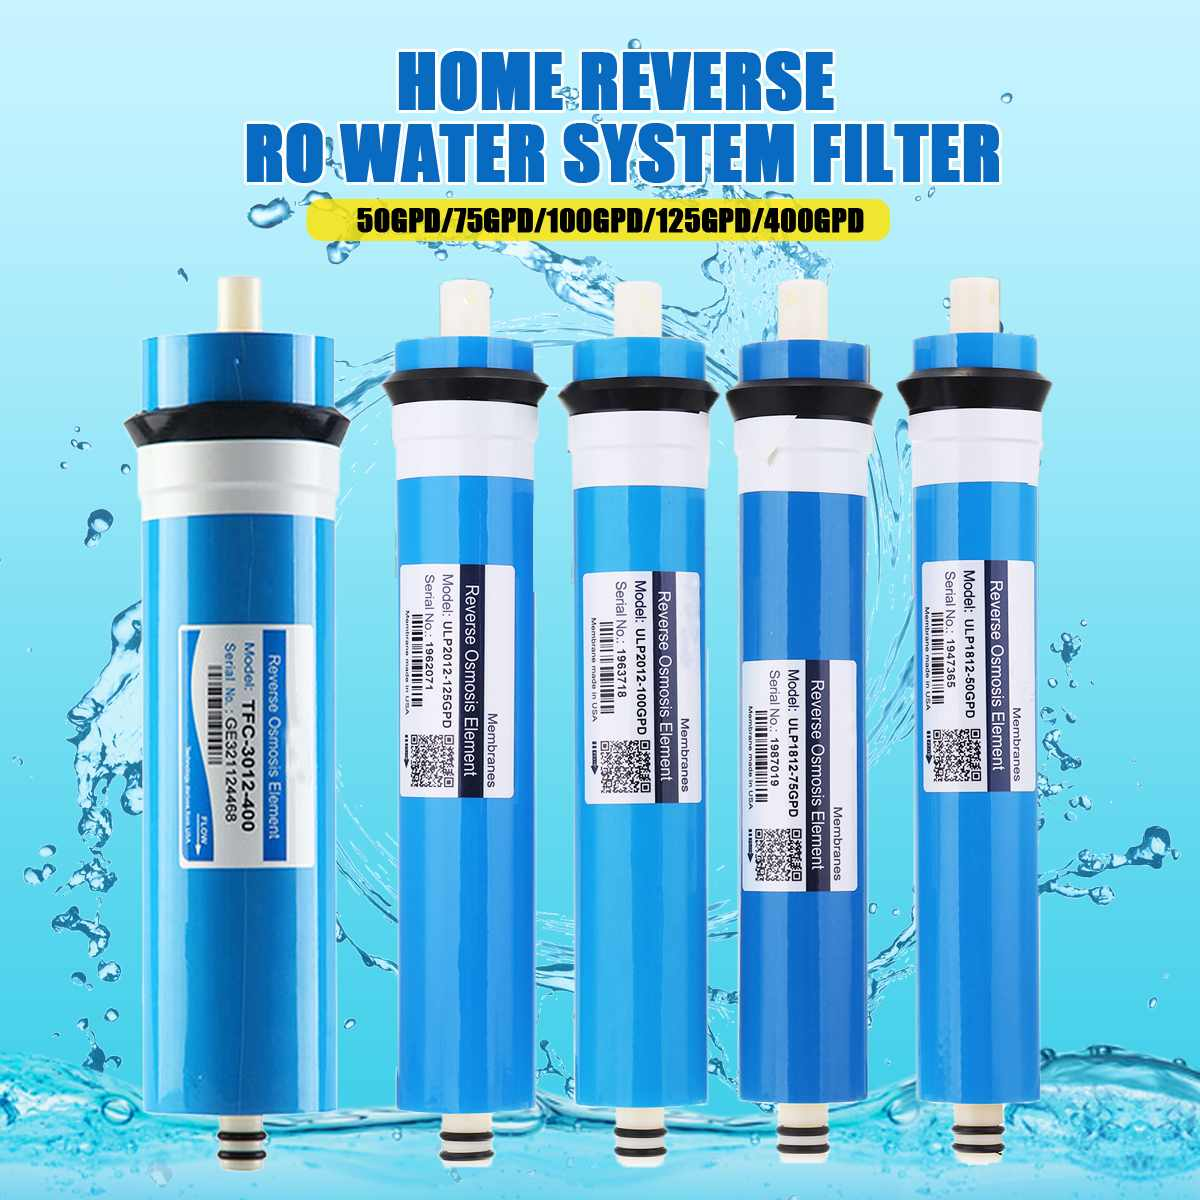 50/75/100/125/400GPD Home Kitchen Reverse Osmosis RO Membrane Replacement Water System Filter Water Purifier Drinking Treatment50/75/100/125/400GPD Home Kitchen Reverse Osmosis RO Membrane Replacement Water System Filter Water Purifier Drinking Treatment